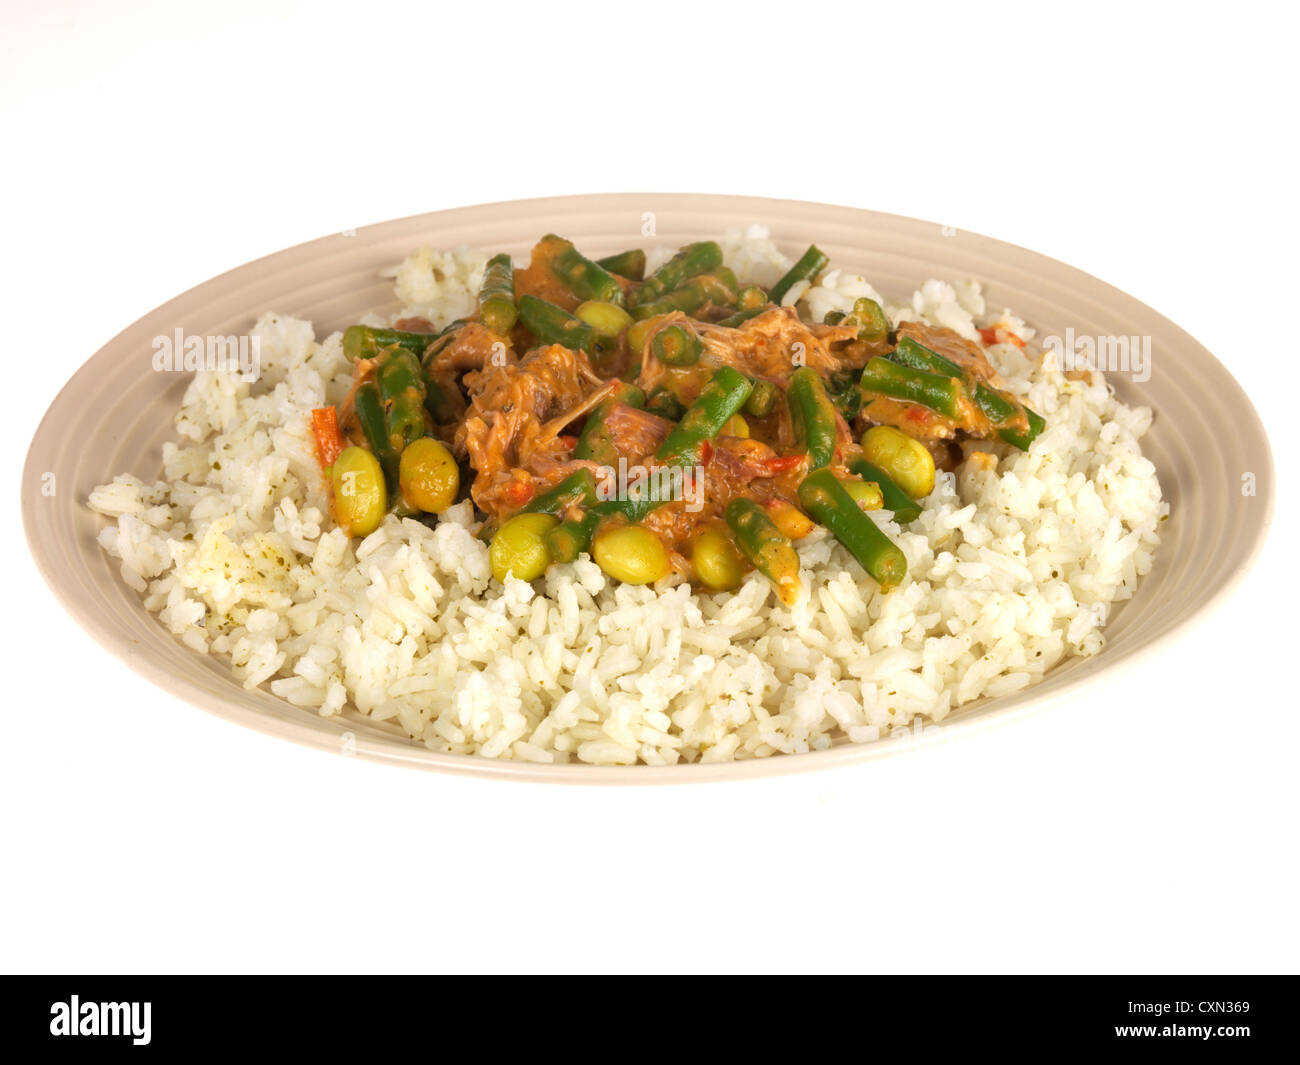 Red Thai Duck Curry Stock Photo, Royalty Free Image: 50865313 - Alamy